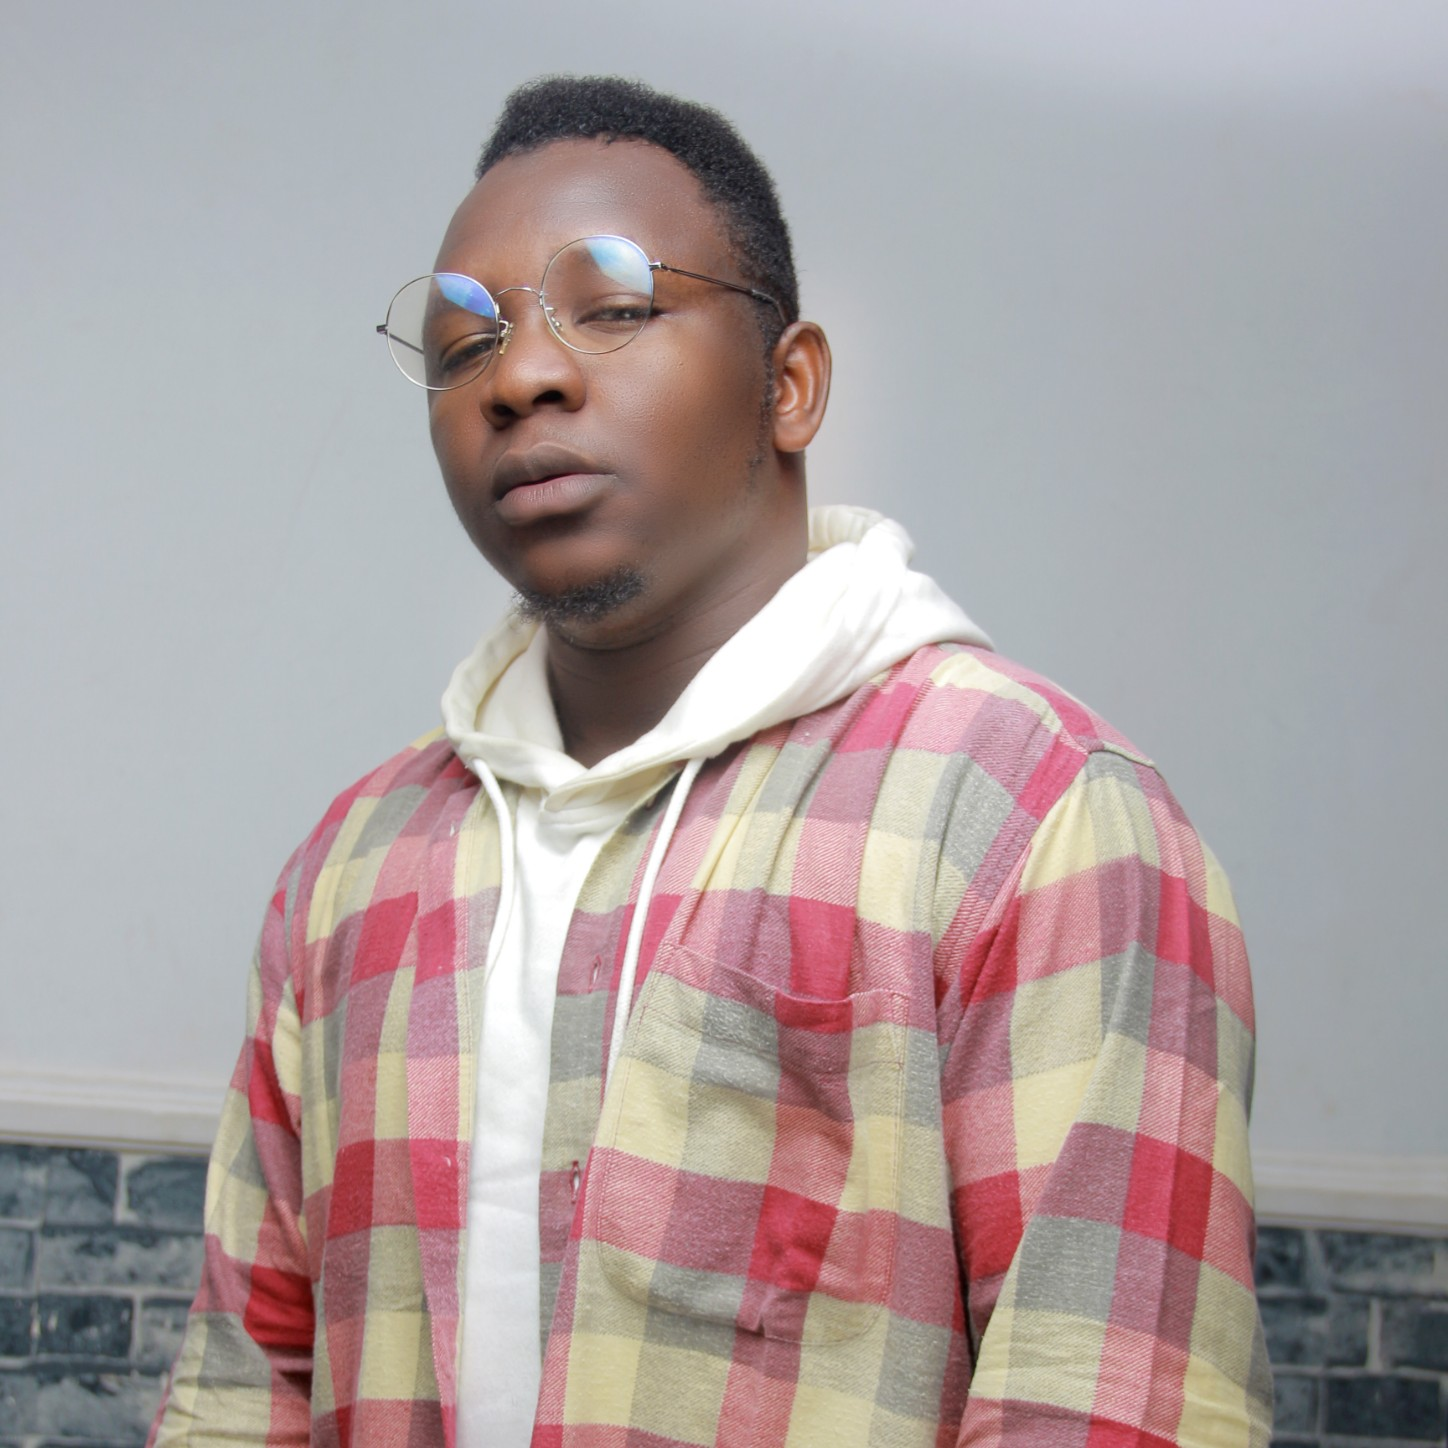 Meet Mr. Genius (Son of Jigawa) - the Hausa HipHop artist with a 1st class masters degree